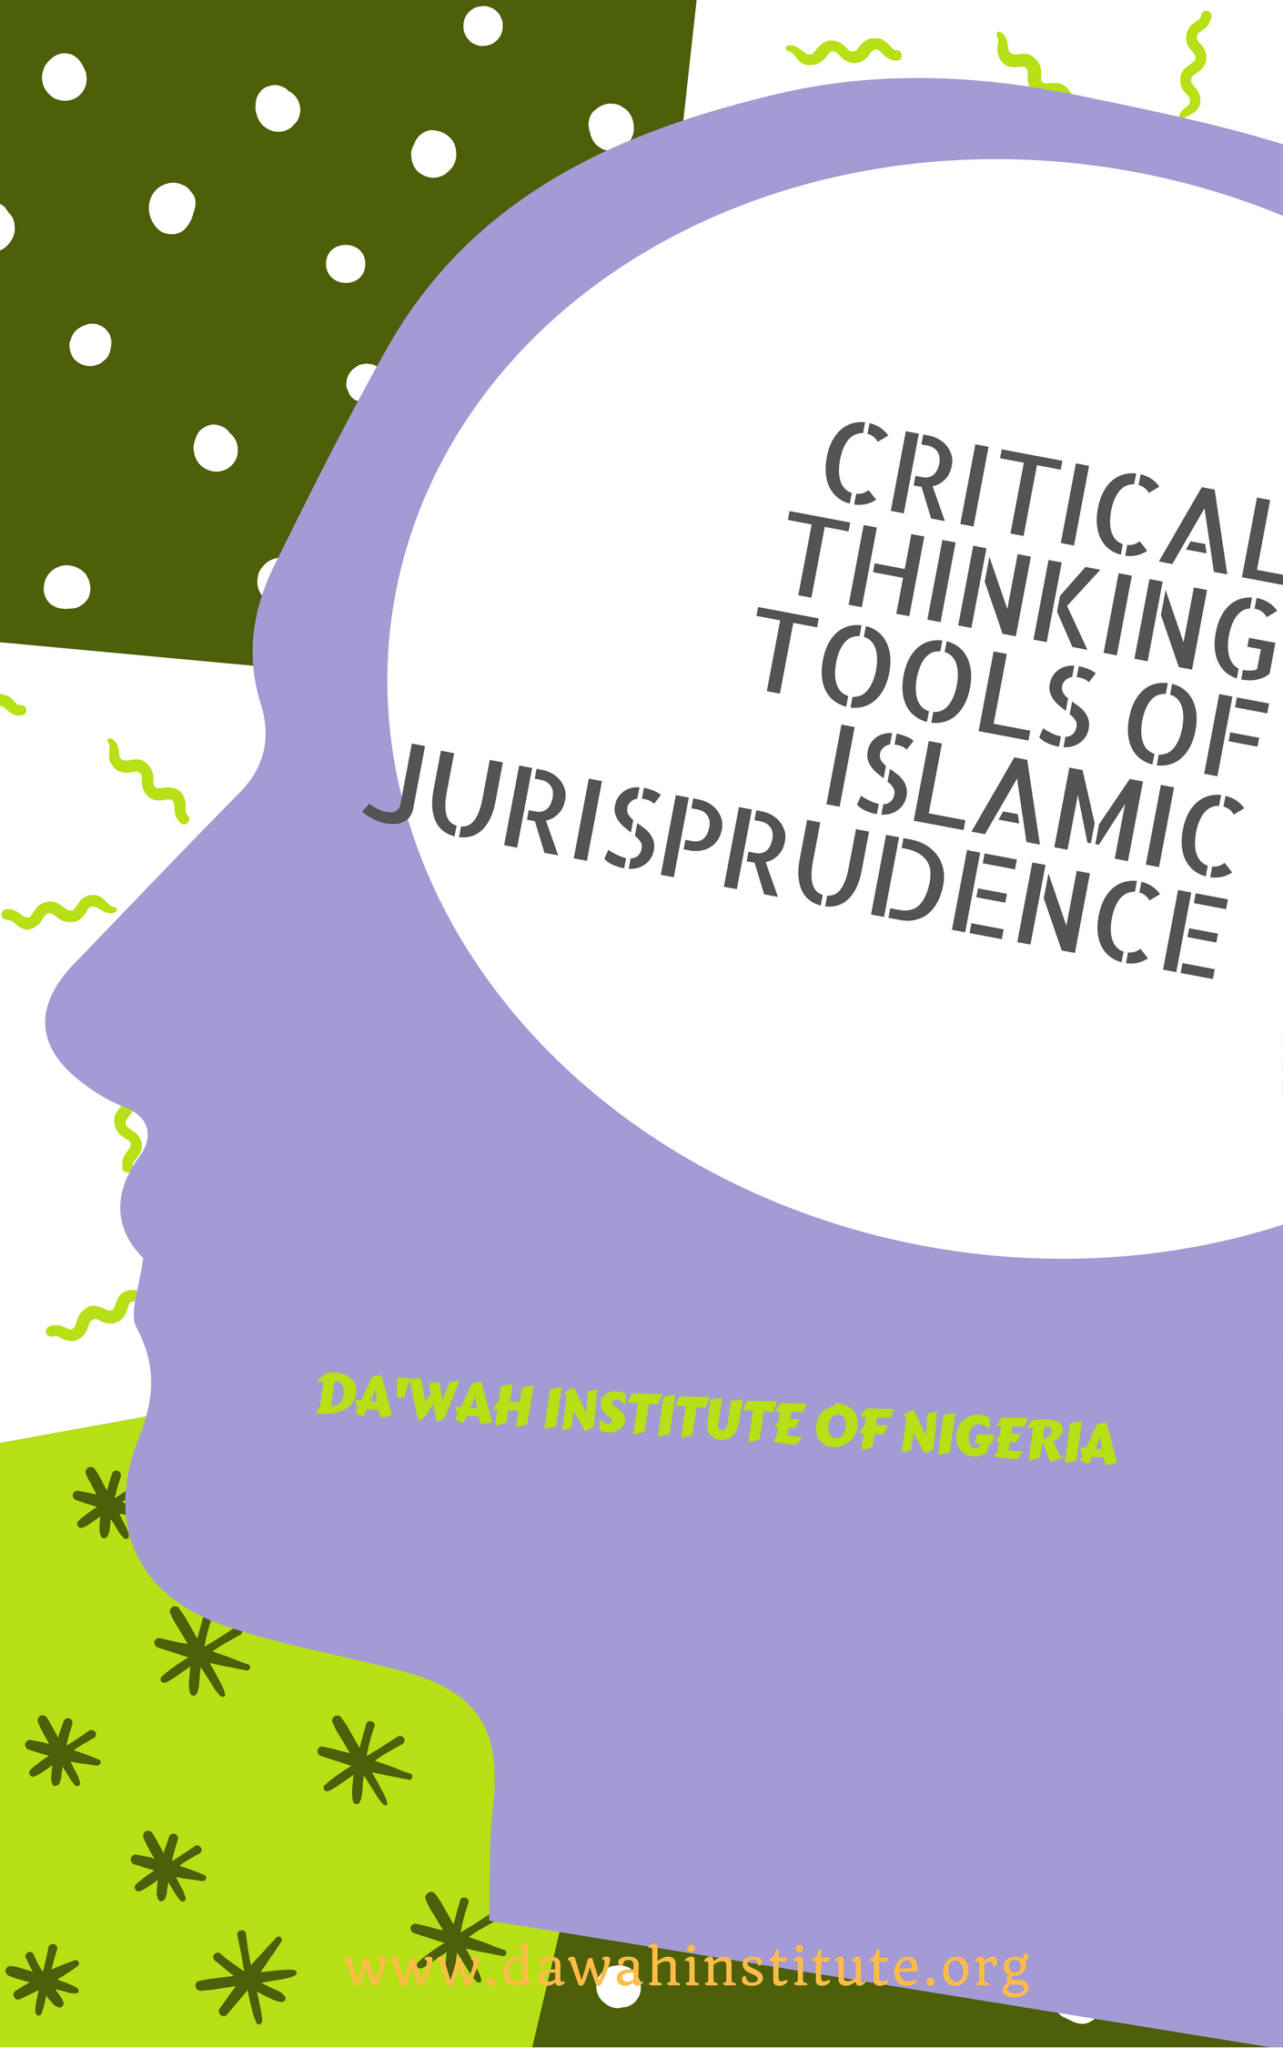 https://dawahinstitute.org/wp-content/uploads/CRITICAL-THINKING-1.png